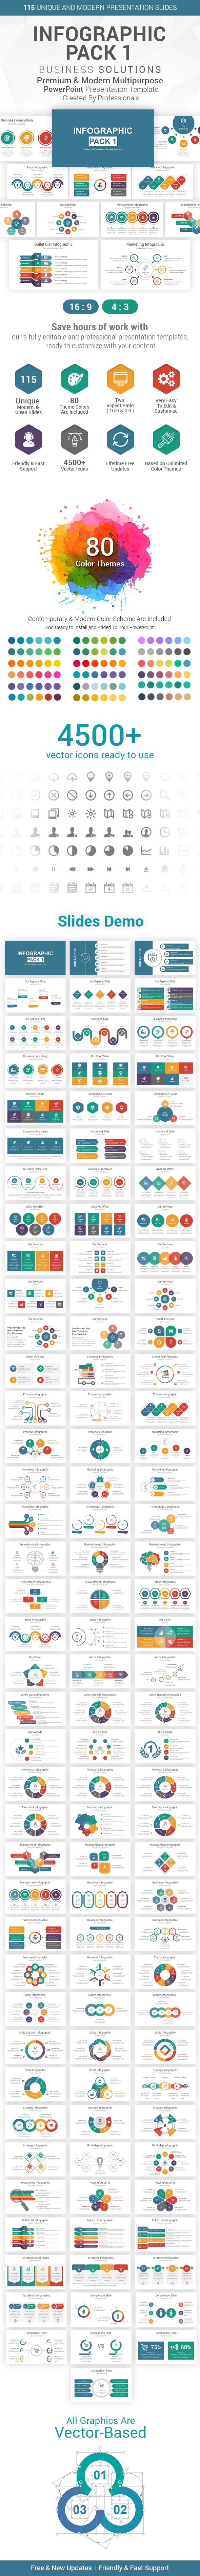 Infographics Pack-1 PowerPoint Presentation Template - Business PowerPoint Templates